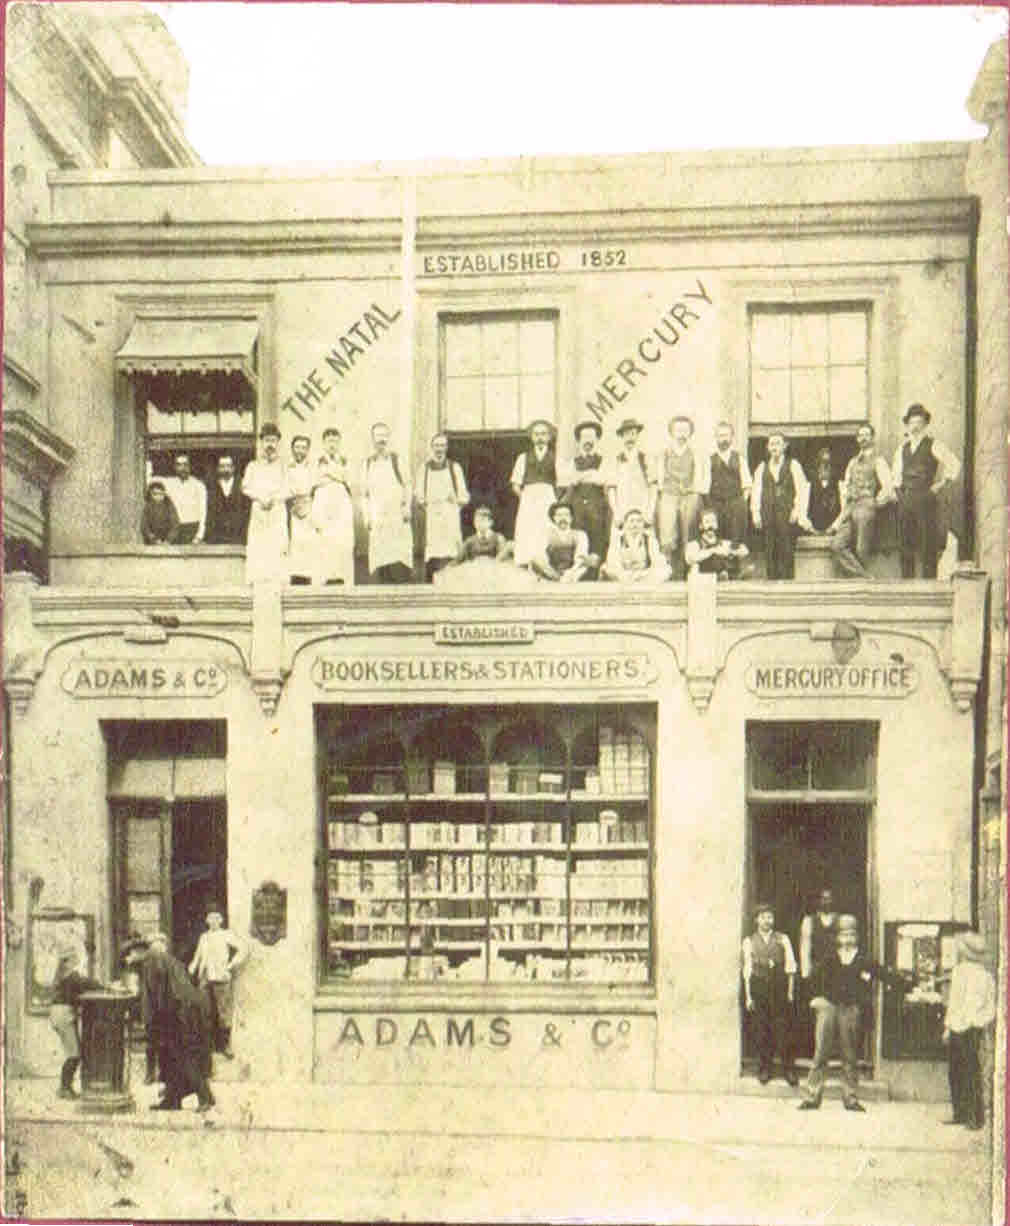 Adams - Stationers and Booksellers 1865 Premises